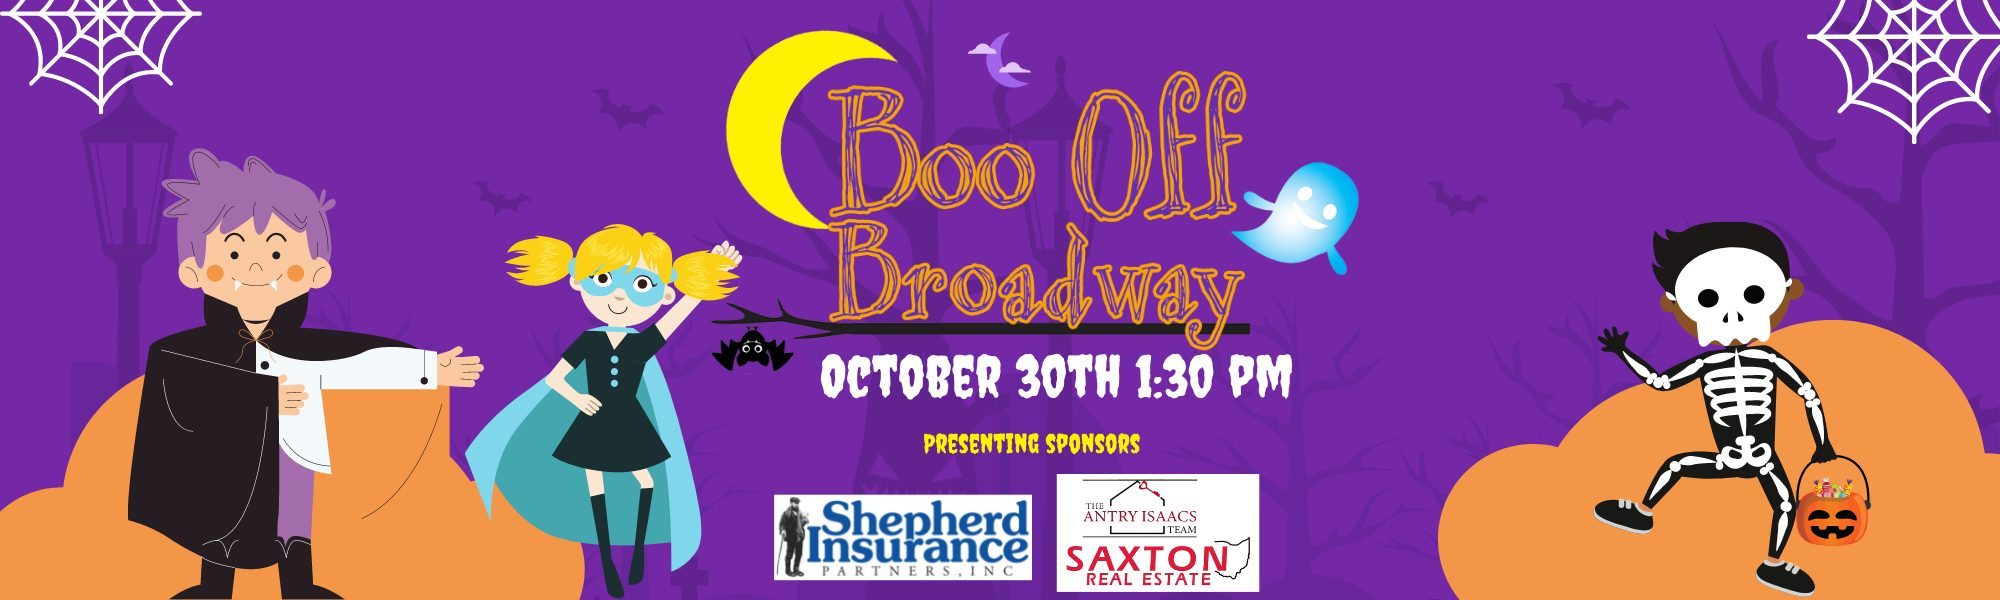 Boo off broadway graphic Banner (2)